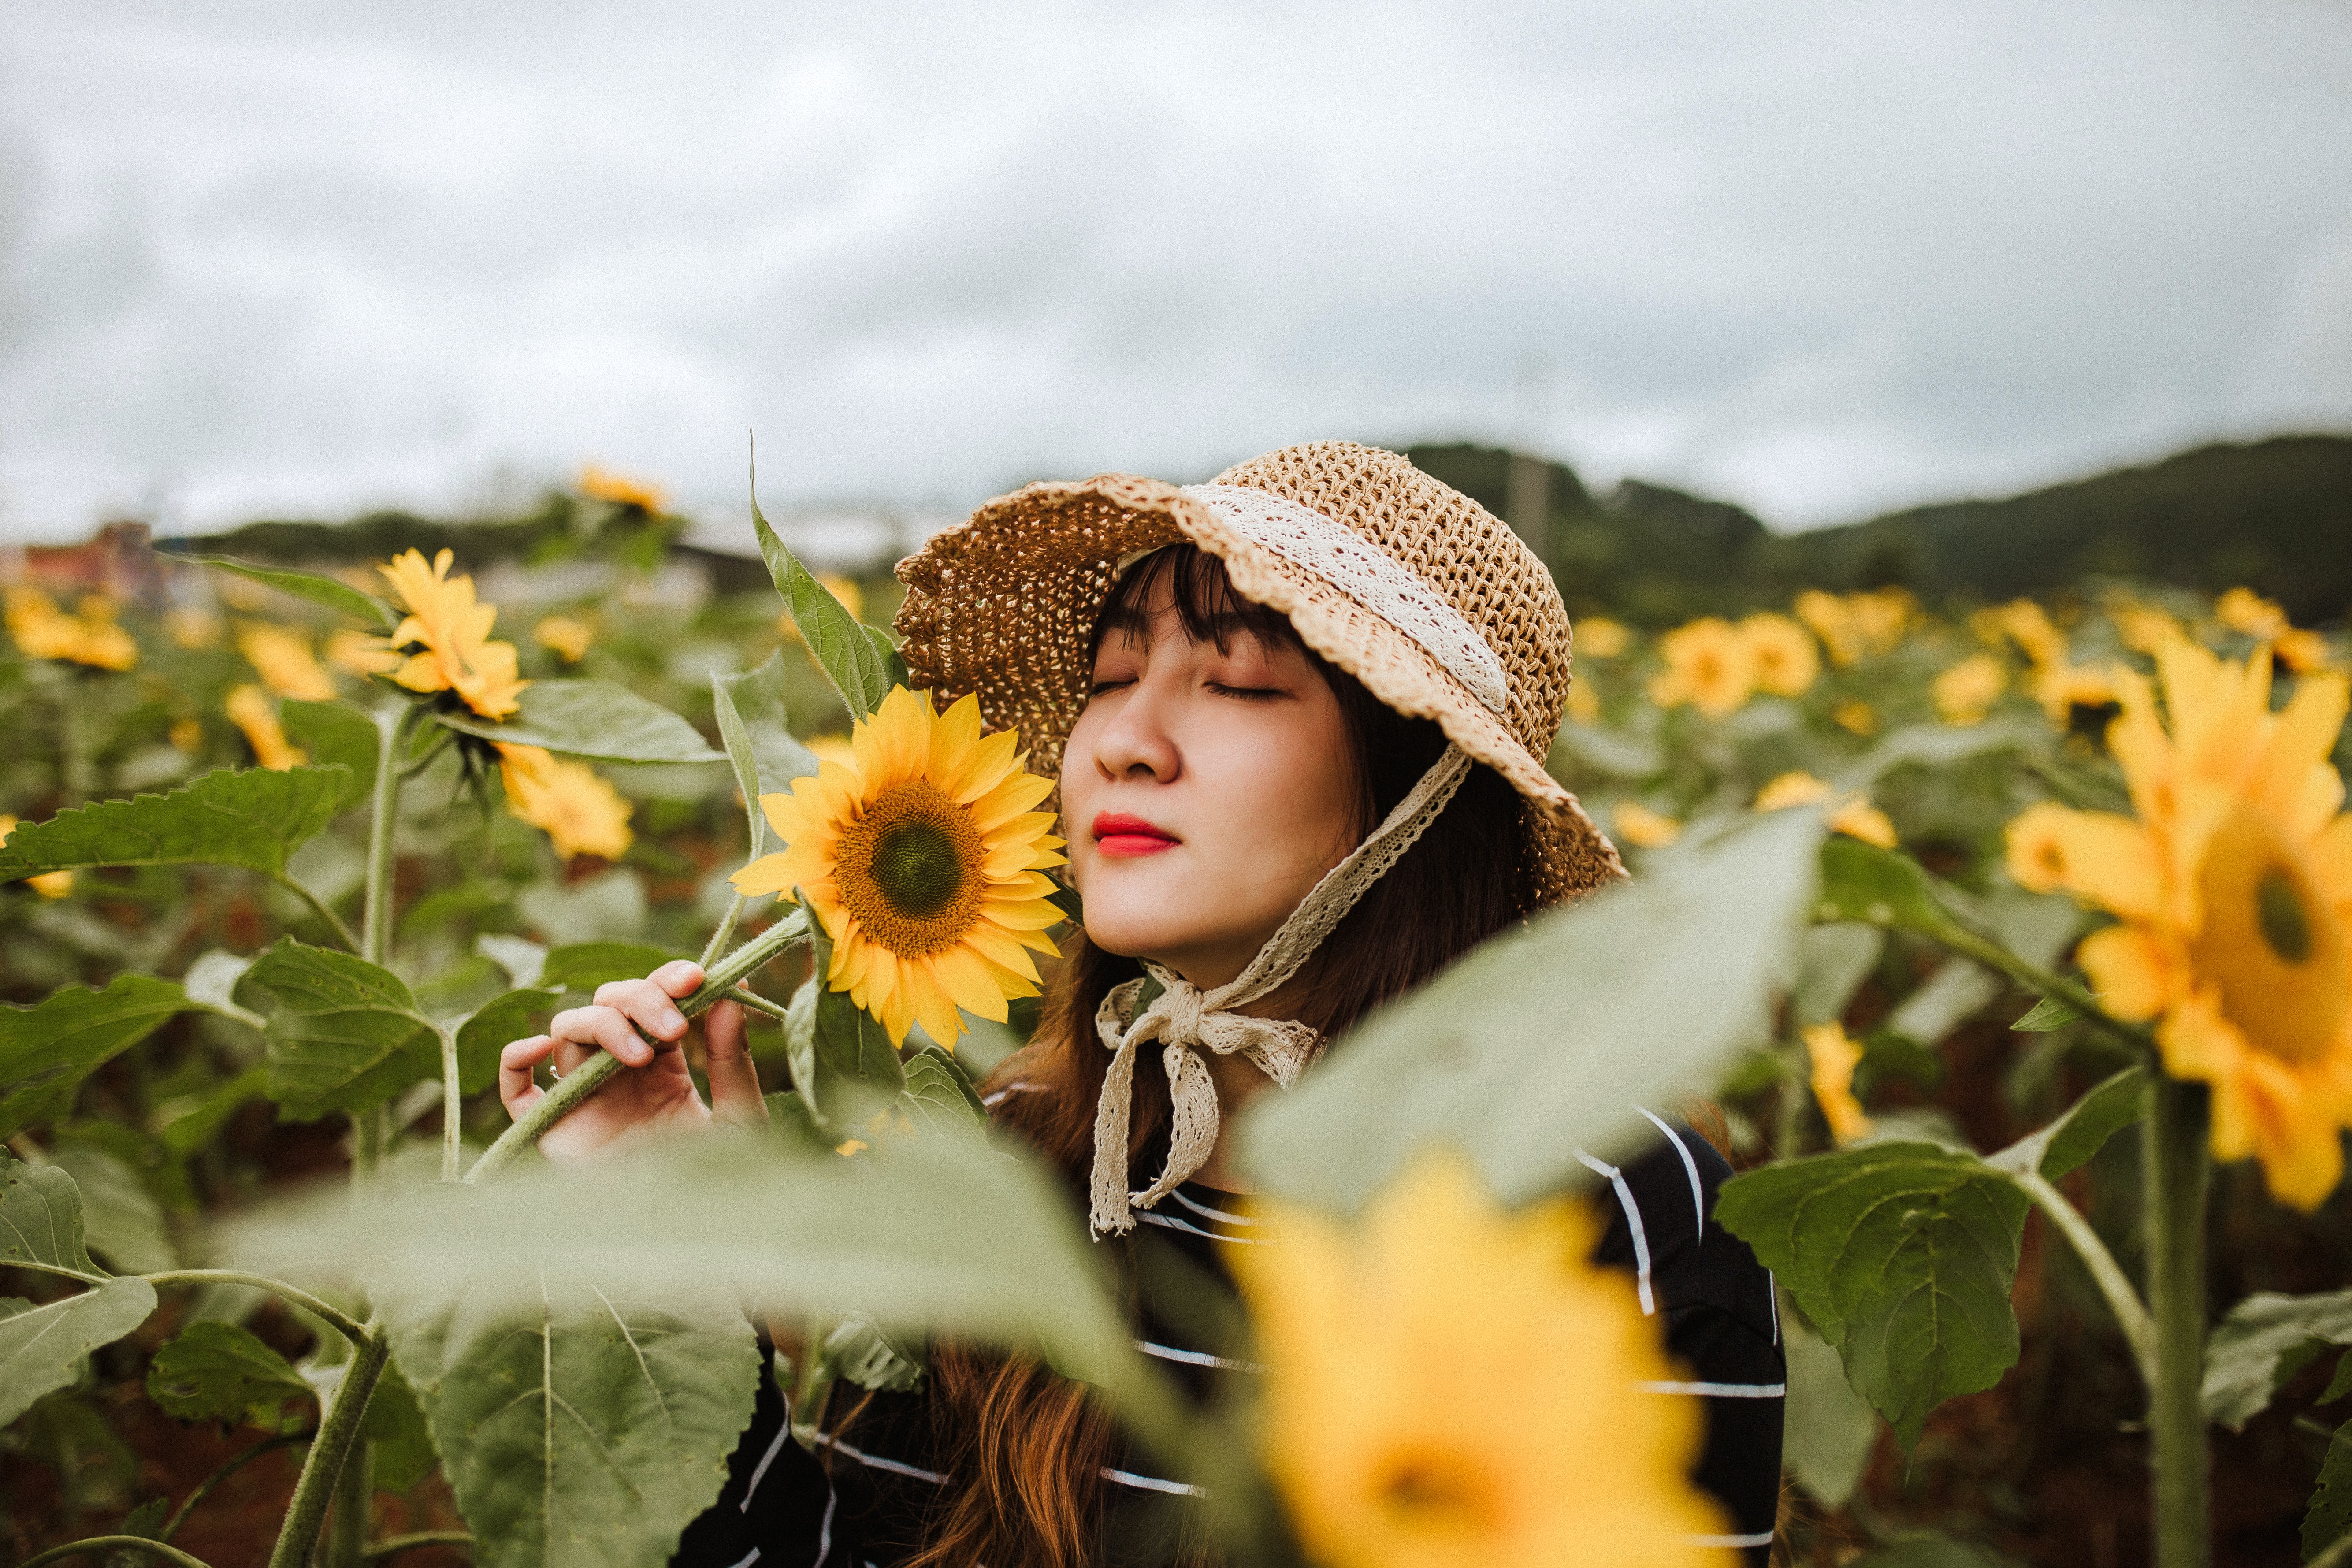 woman in sunflower field smelling sunflower